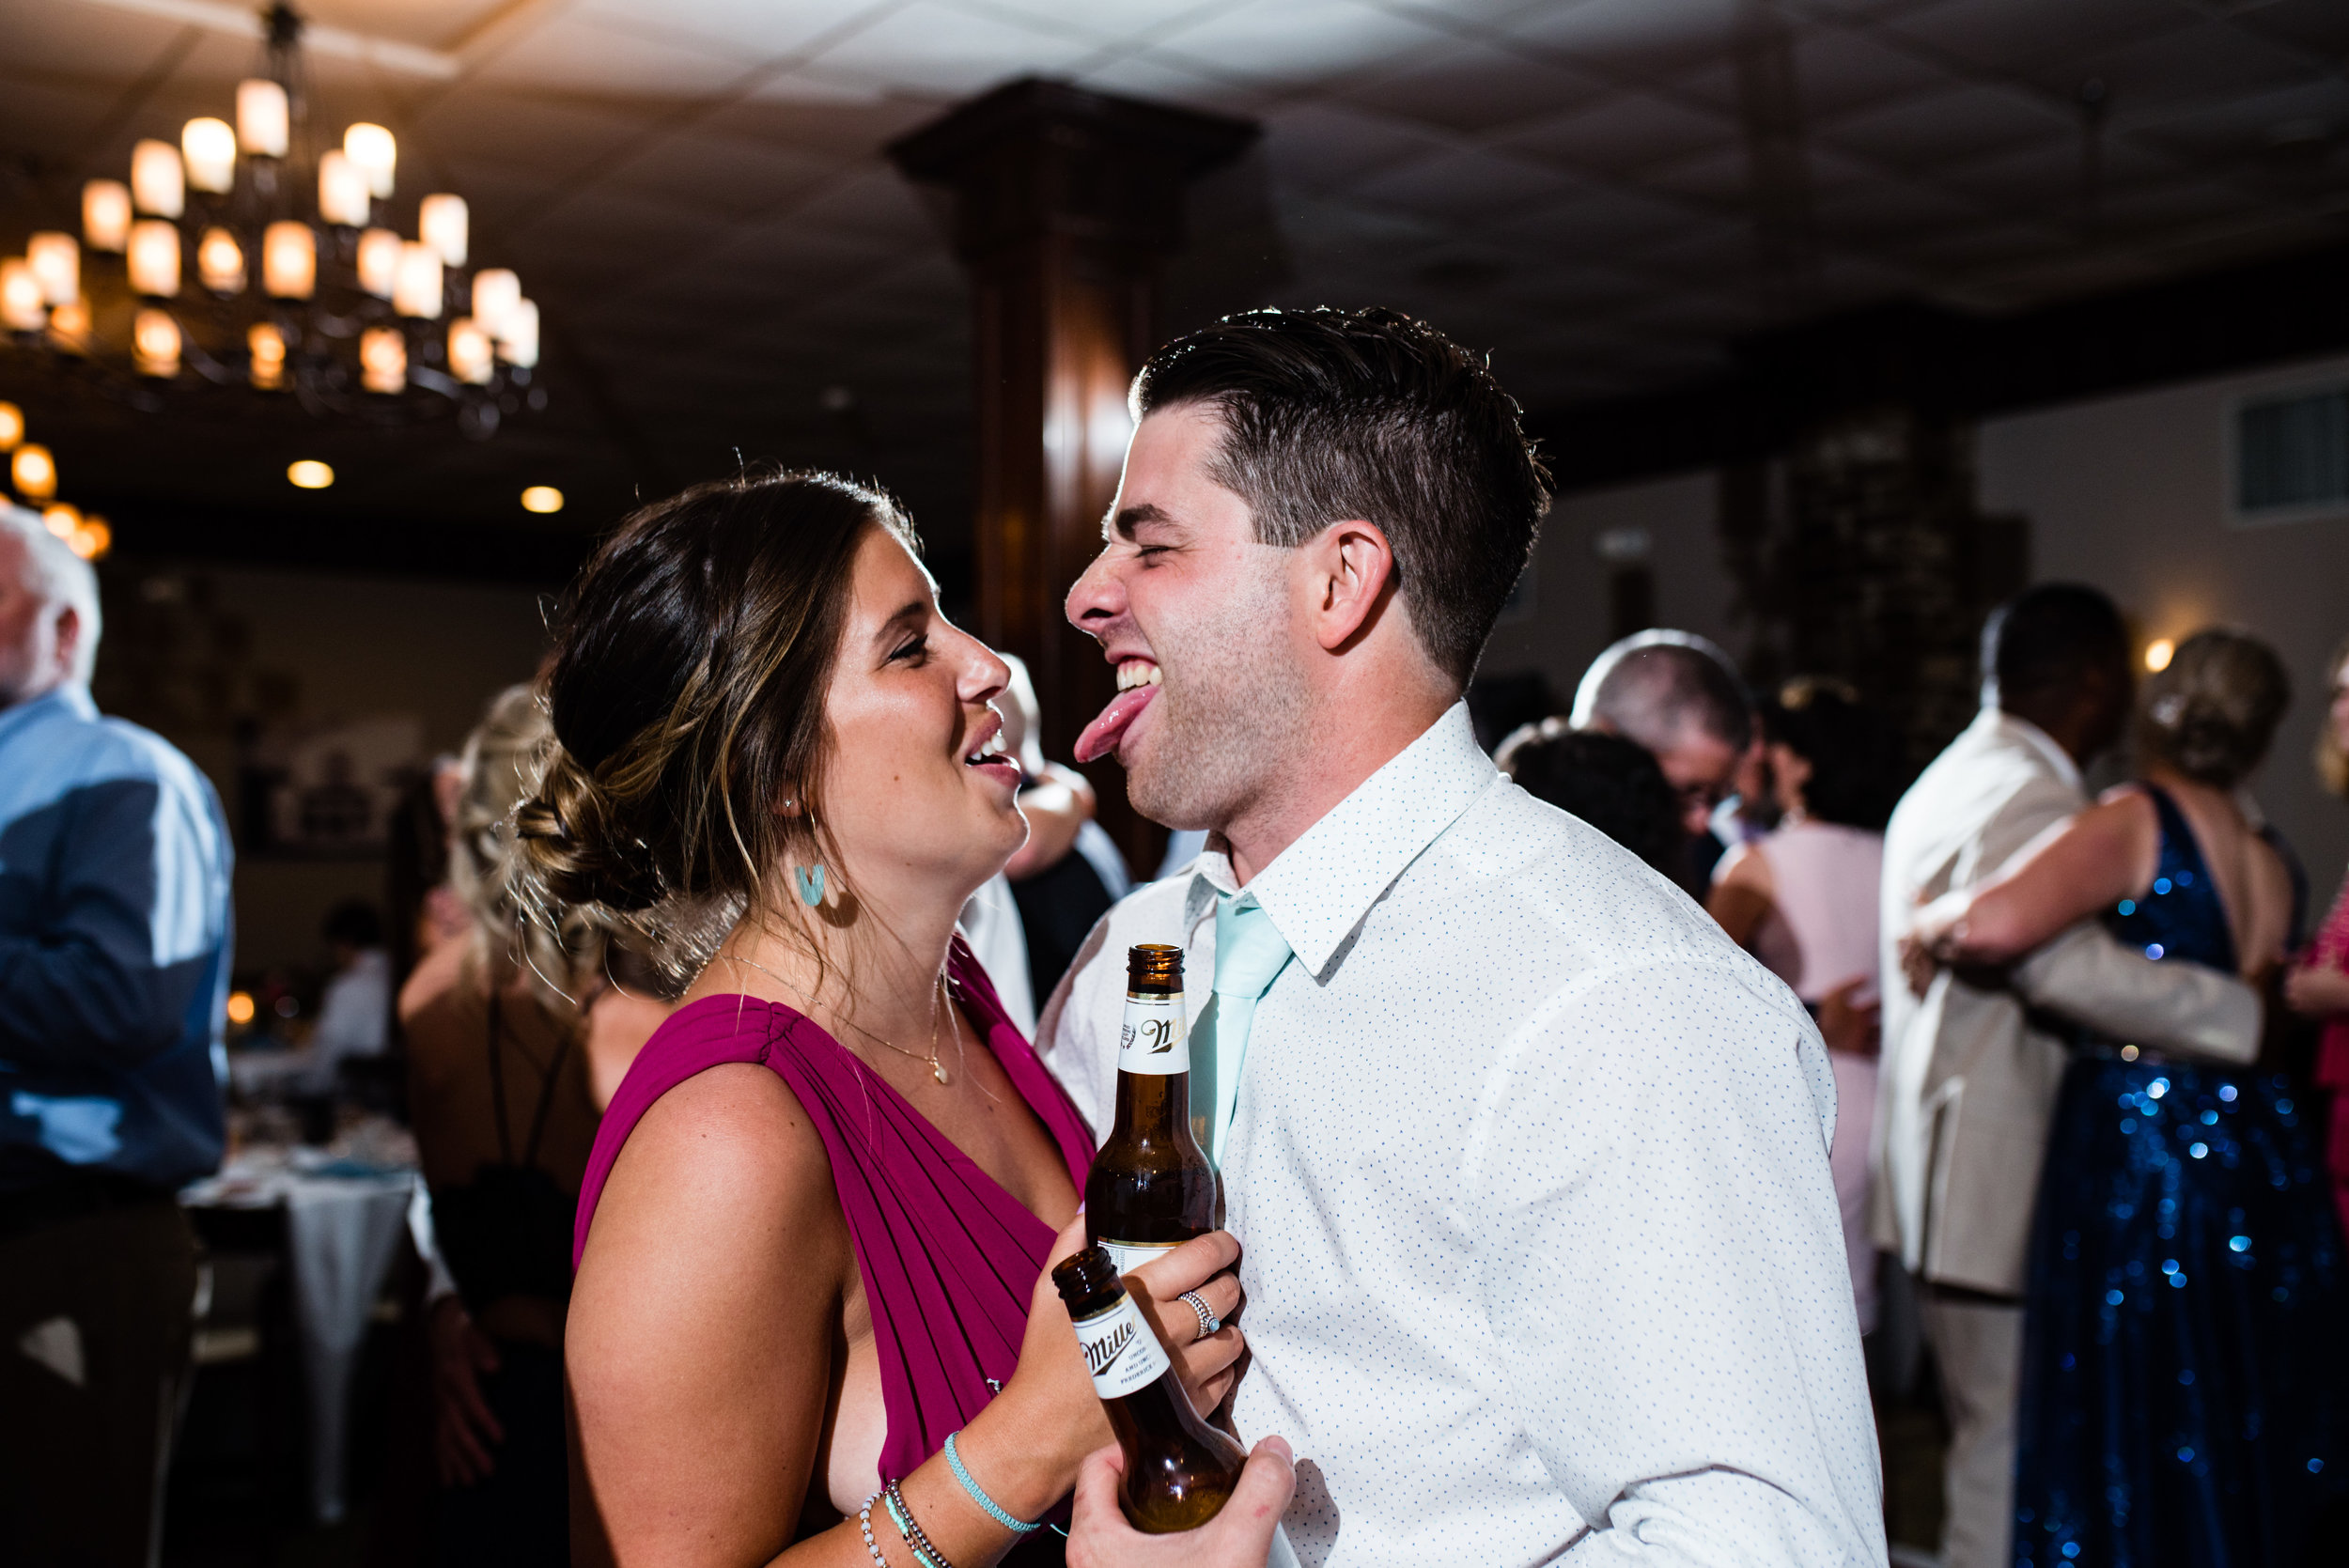 LauraDavidWedding-82.jpg